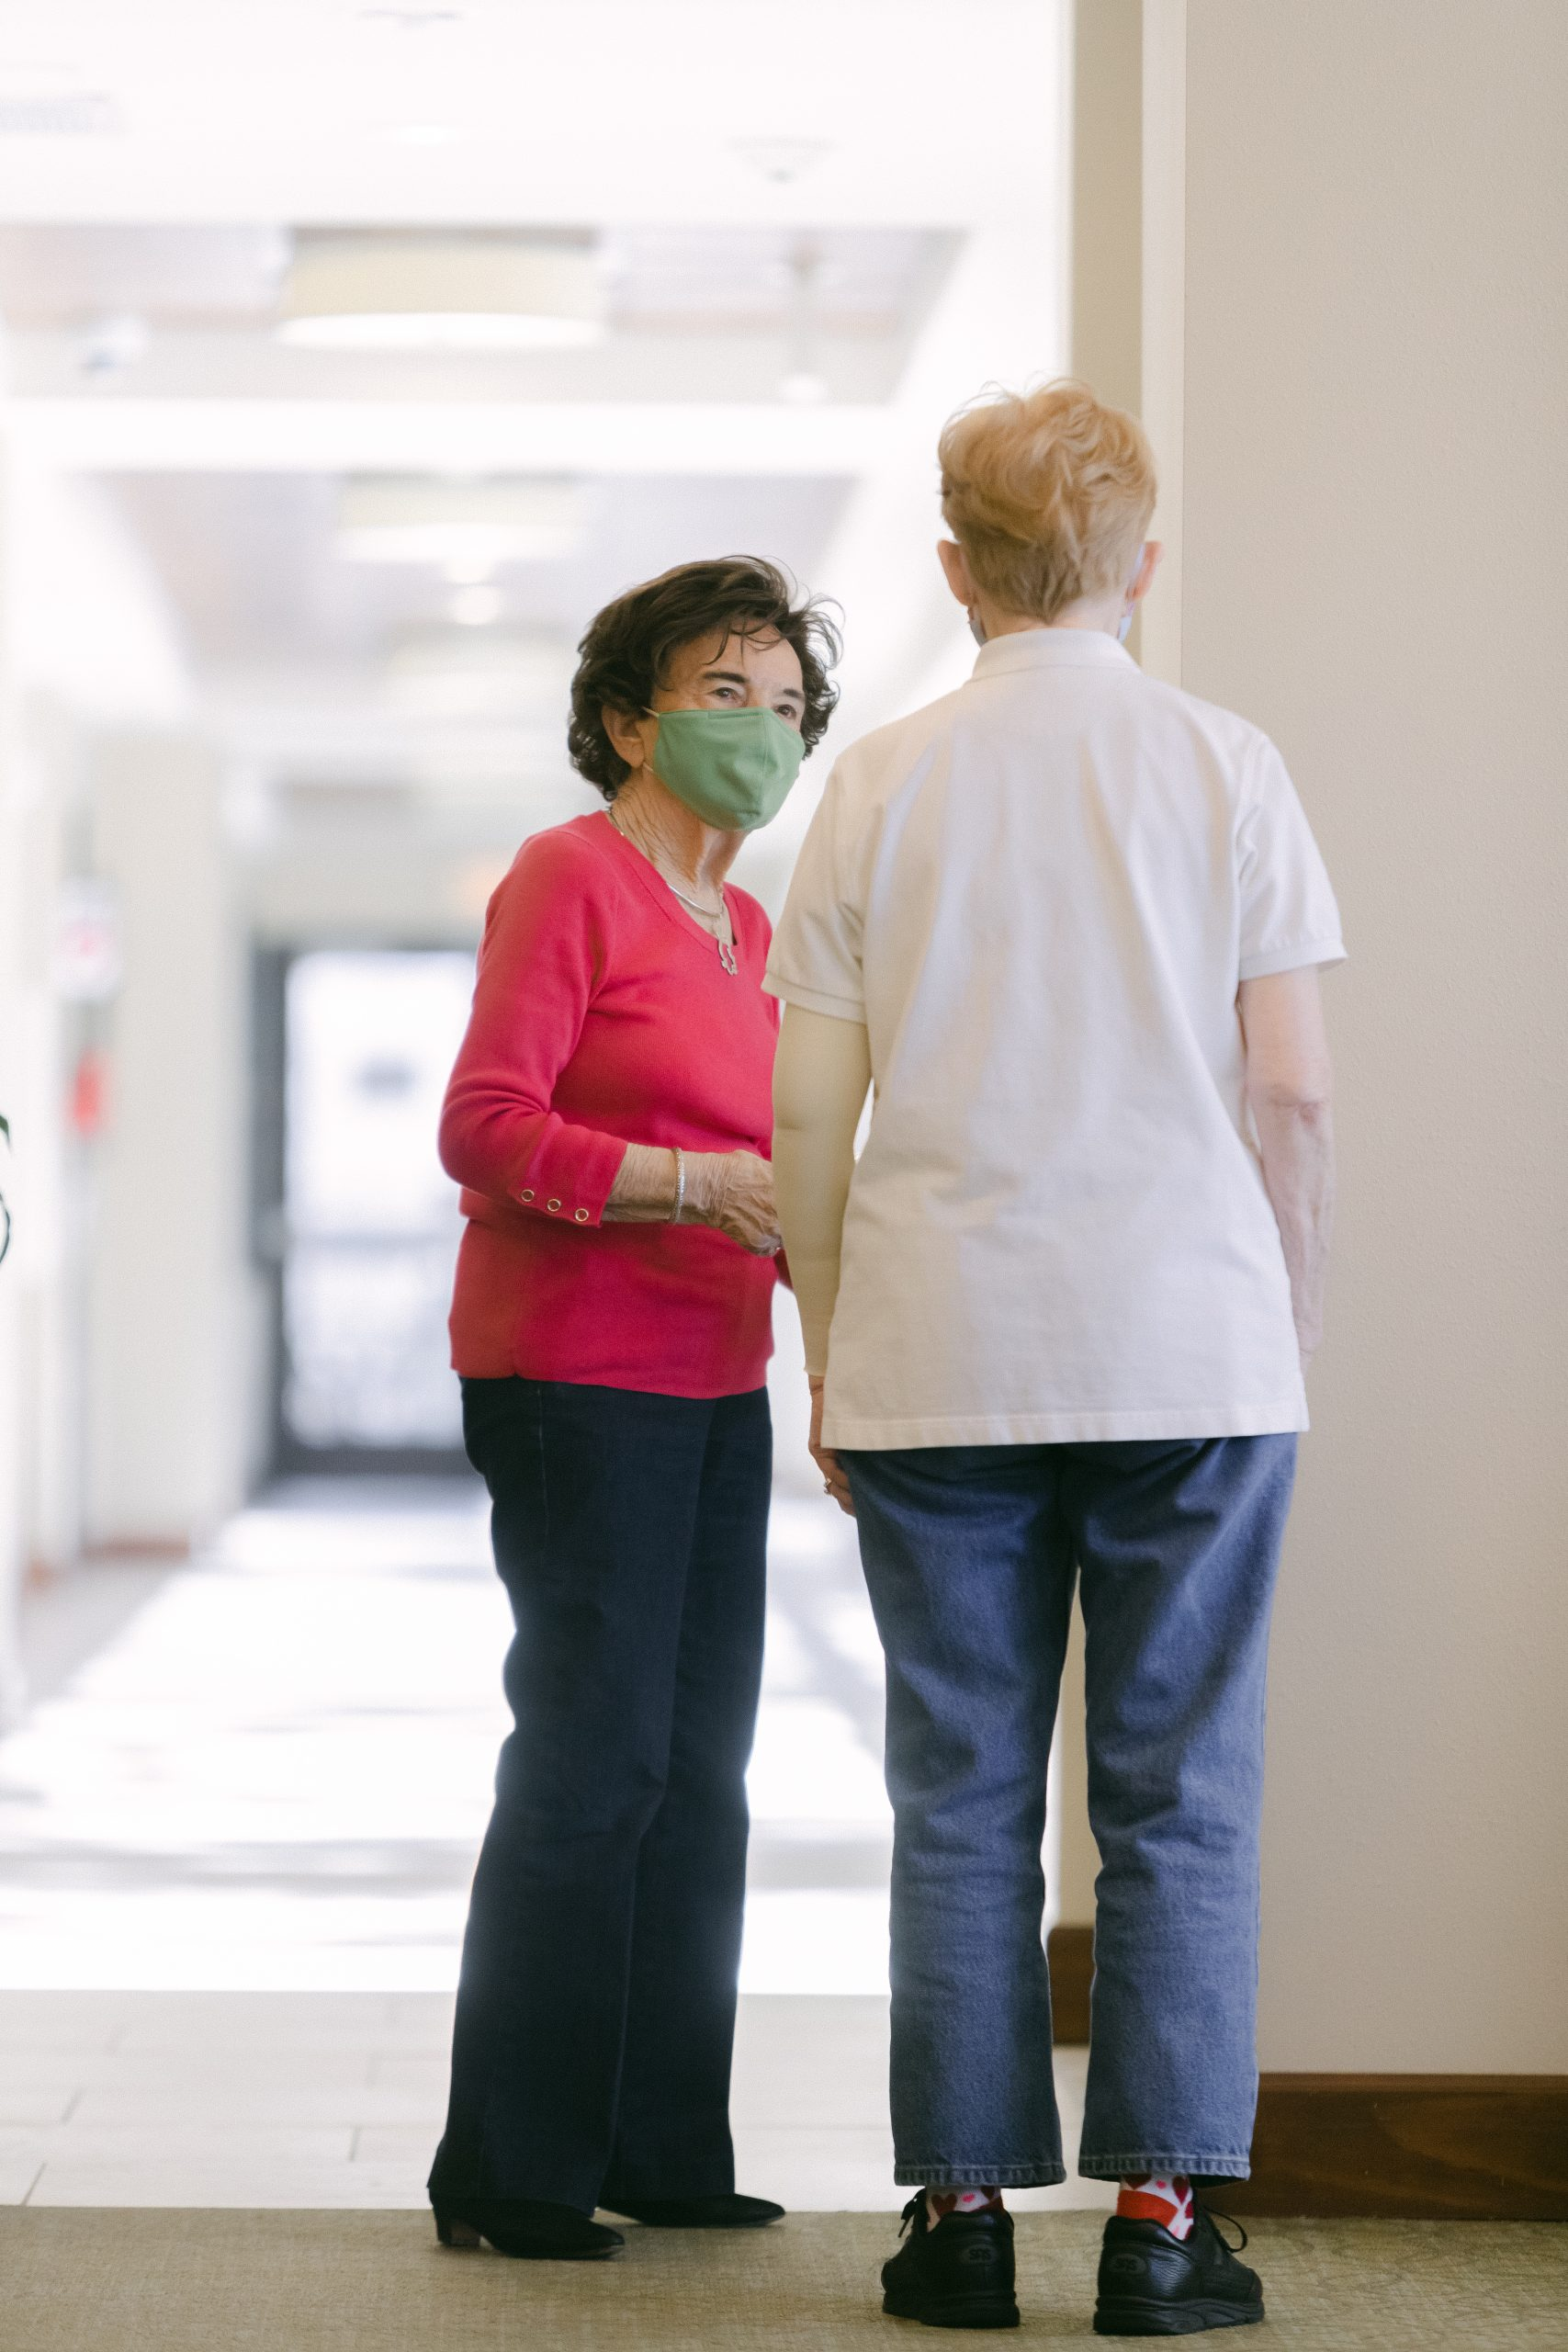 Why Move into in a Retirement Community During a Pandemic?